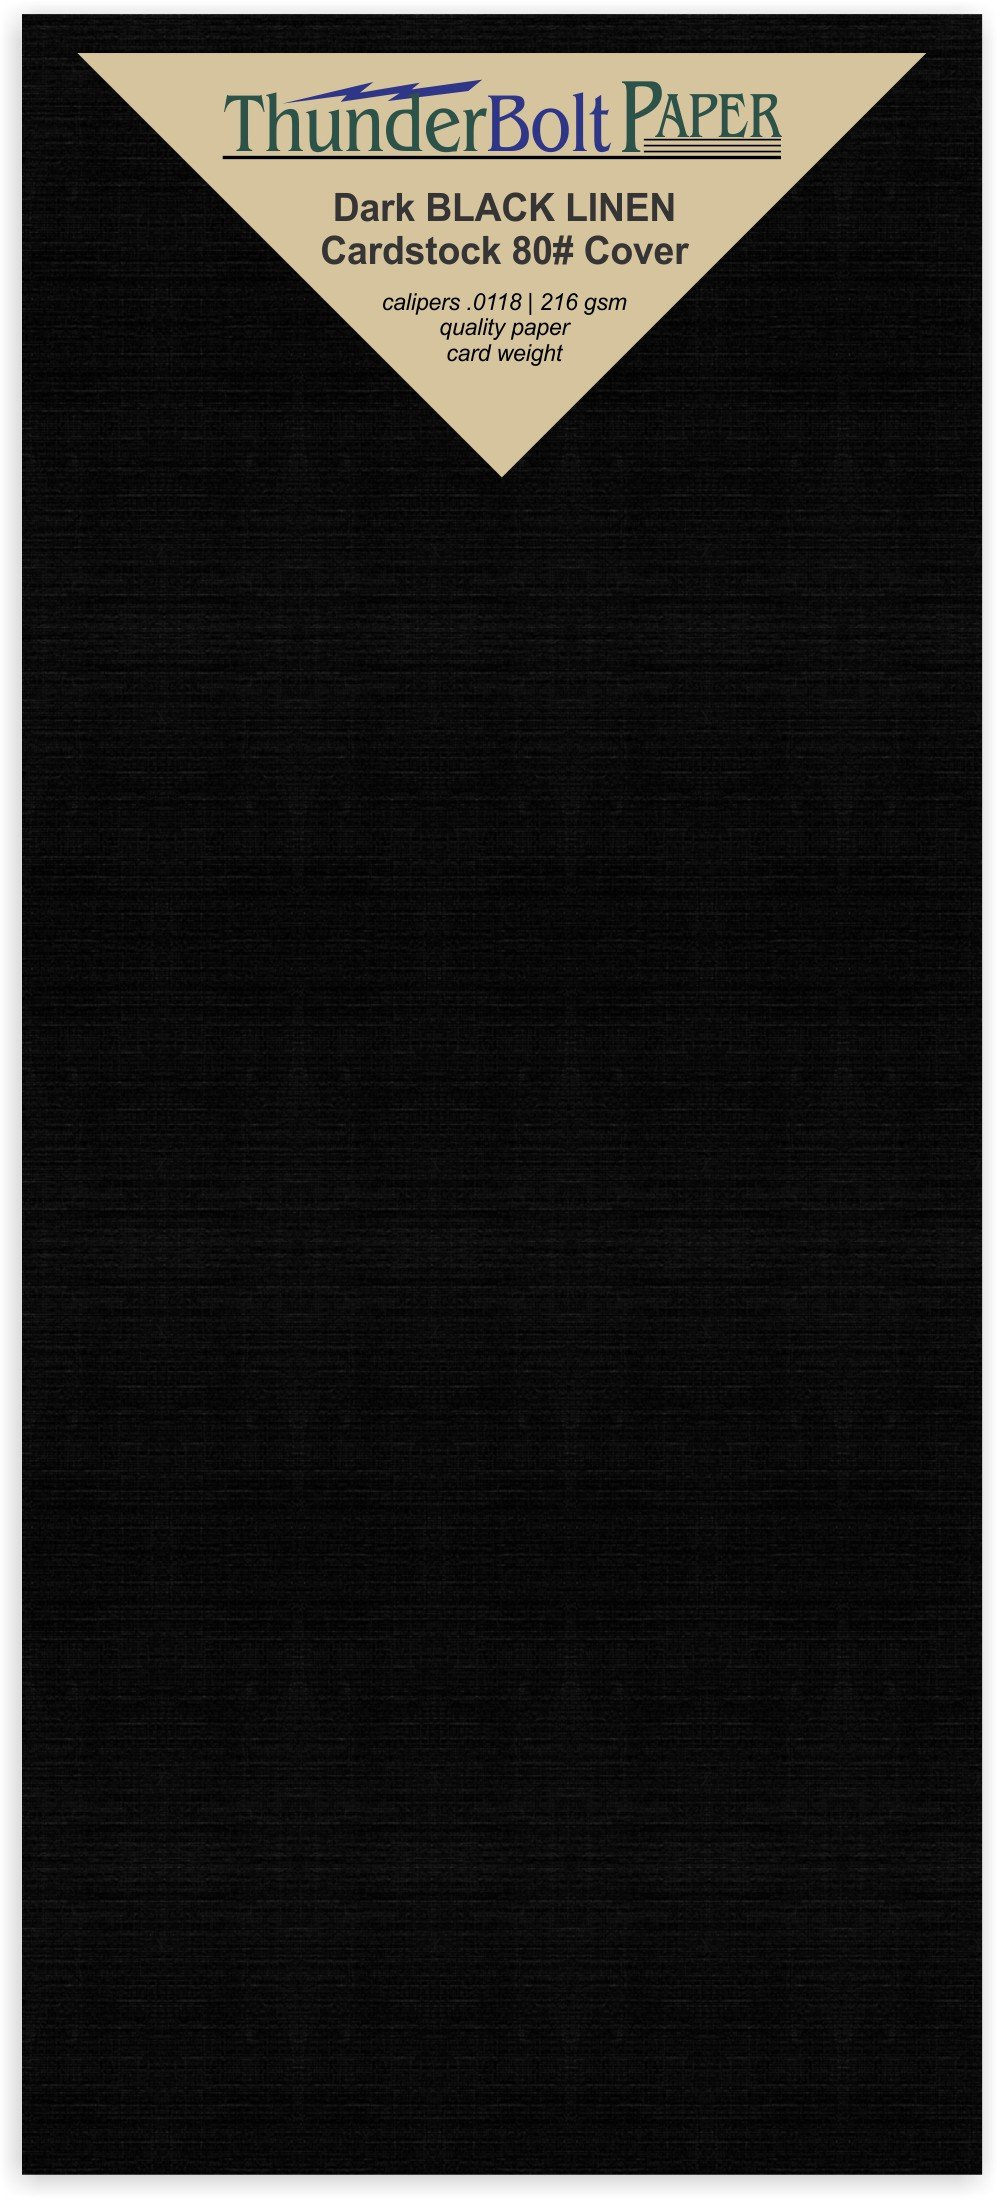 250 Black Linen 80# Cover Paper Sheets - 4'' X 9'' (4X9 Inches) #10 Envelope Insert Size - Card Weight - Deep Dye, Fine Linen Textured Finish - Quality Cardstock